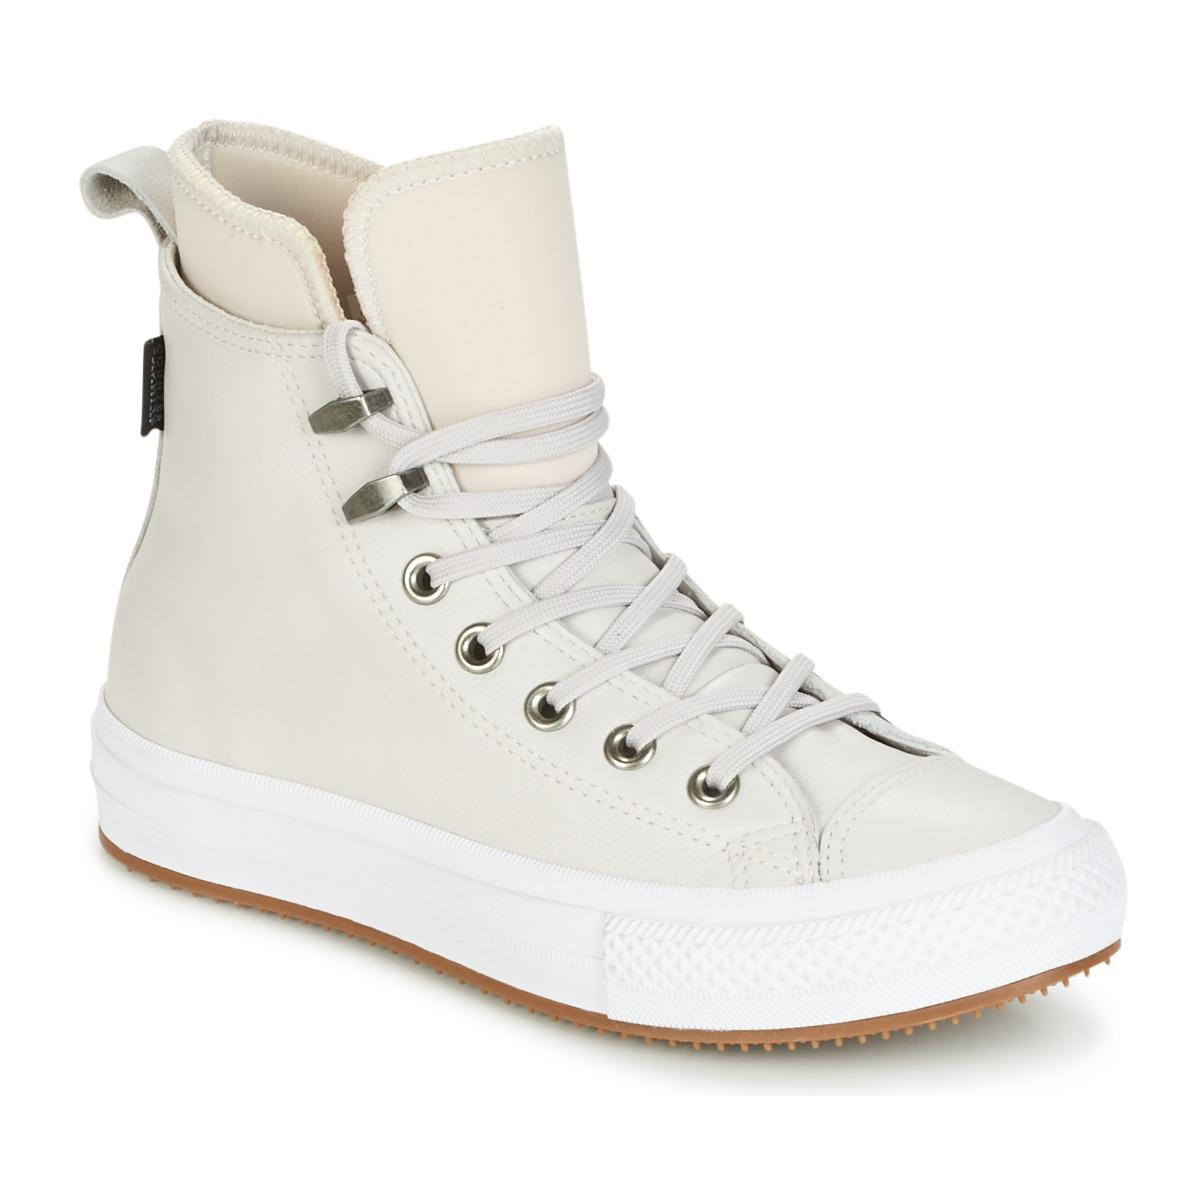 Converse CHUCK TAYLOR WP BOOT women's Shoes (High-top Trainers) in Cheap Online ZIr8ZfO